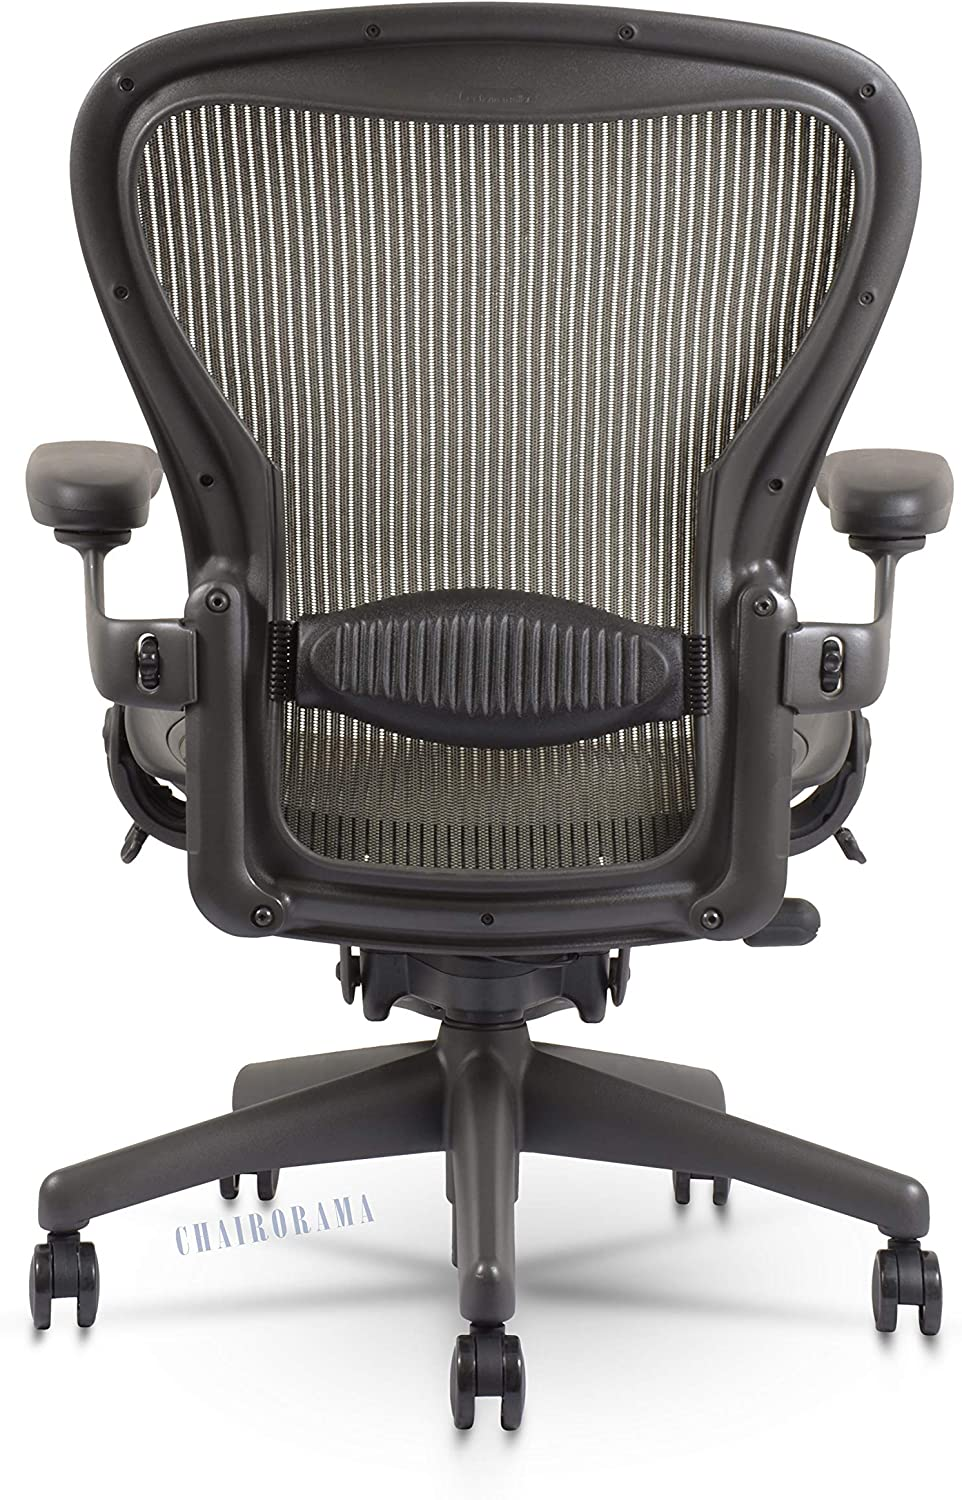 81%2BiGlhXnQL. AC SL1500 - What is The Best Chair For Sciatica Nerve Problems? Get Relief from Sciatica Pain - ChairPicks